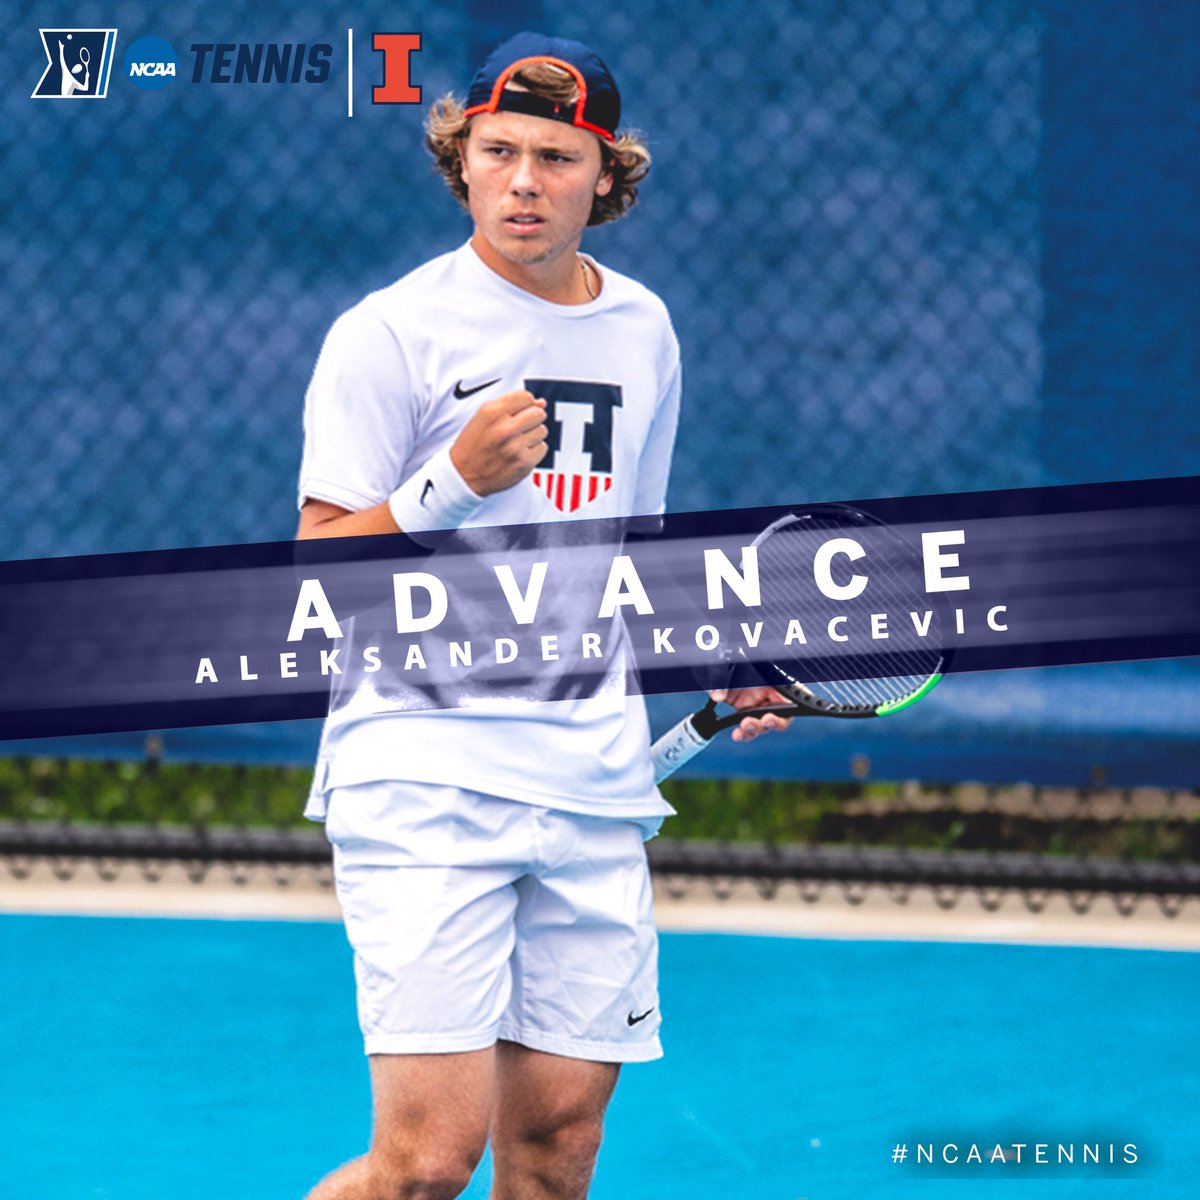 Aleksander Kovacevic of @IlliniMTennis advances to the @NCAATennis Singles Quarterfinals after his opponent withdrew due to injury. #B1GMTennis